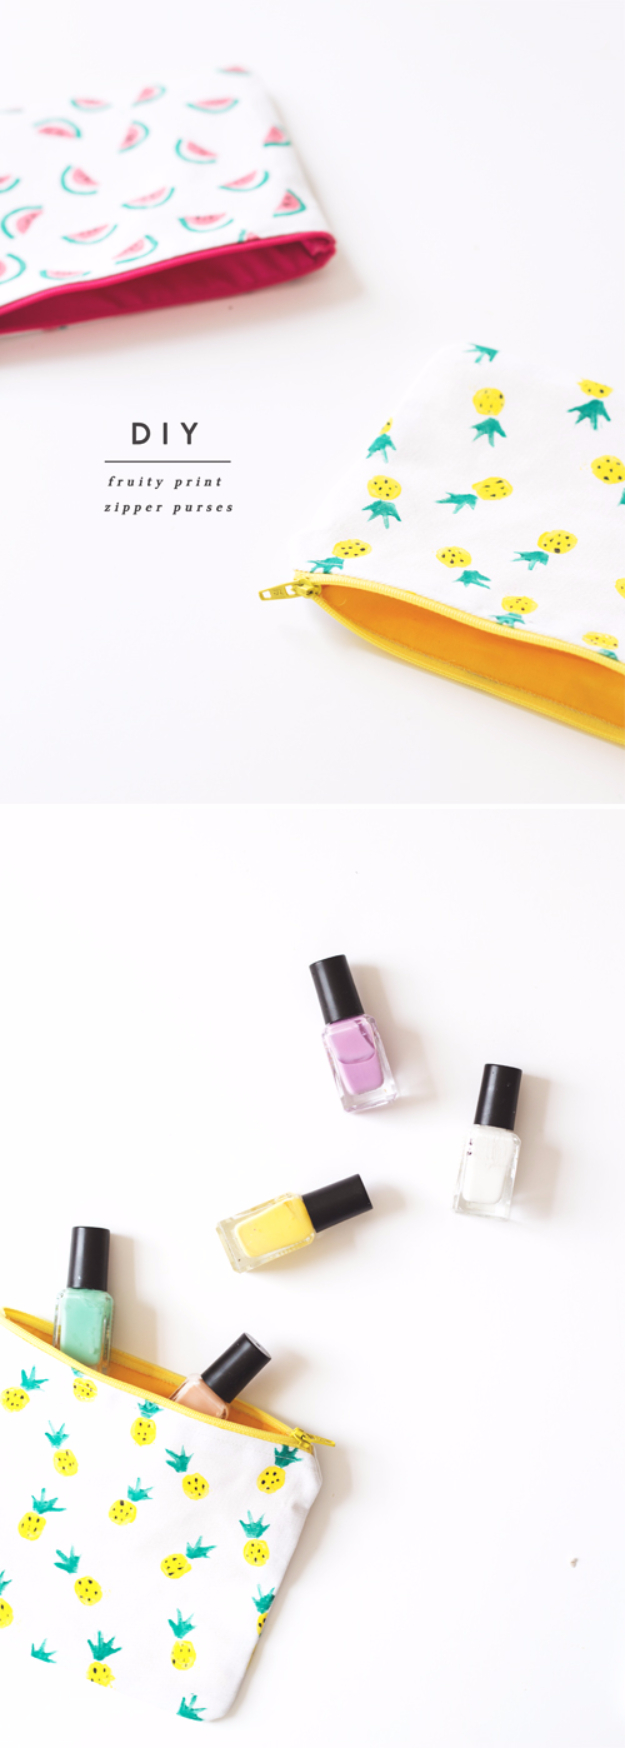 DIY Projects to Make and Sell on Etsy - DIY Fruity Zipper Purses - Learn How To Make Money on Etsy With these Awesome, Cool and Easy Crafts and Craft Project Ideas - Cheap and Creative Crafts to Make and Sell for Etsy Shops http://diyjoy.com/crafts-to-make-and-sell-etsy